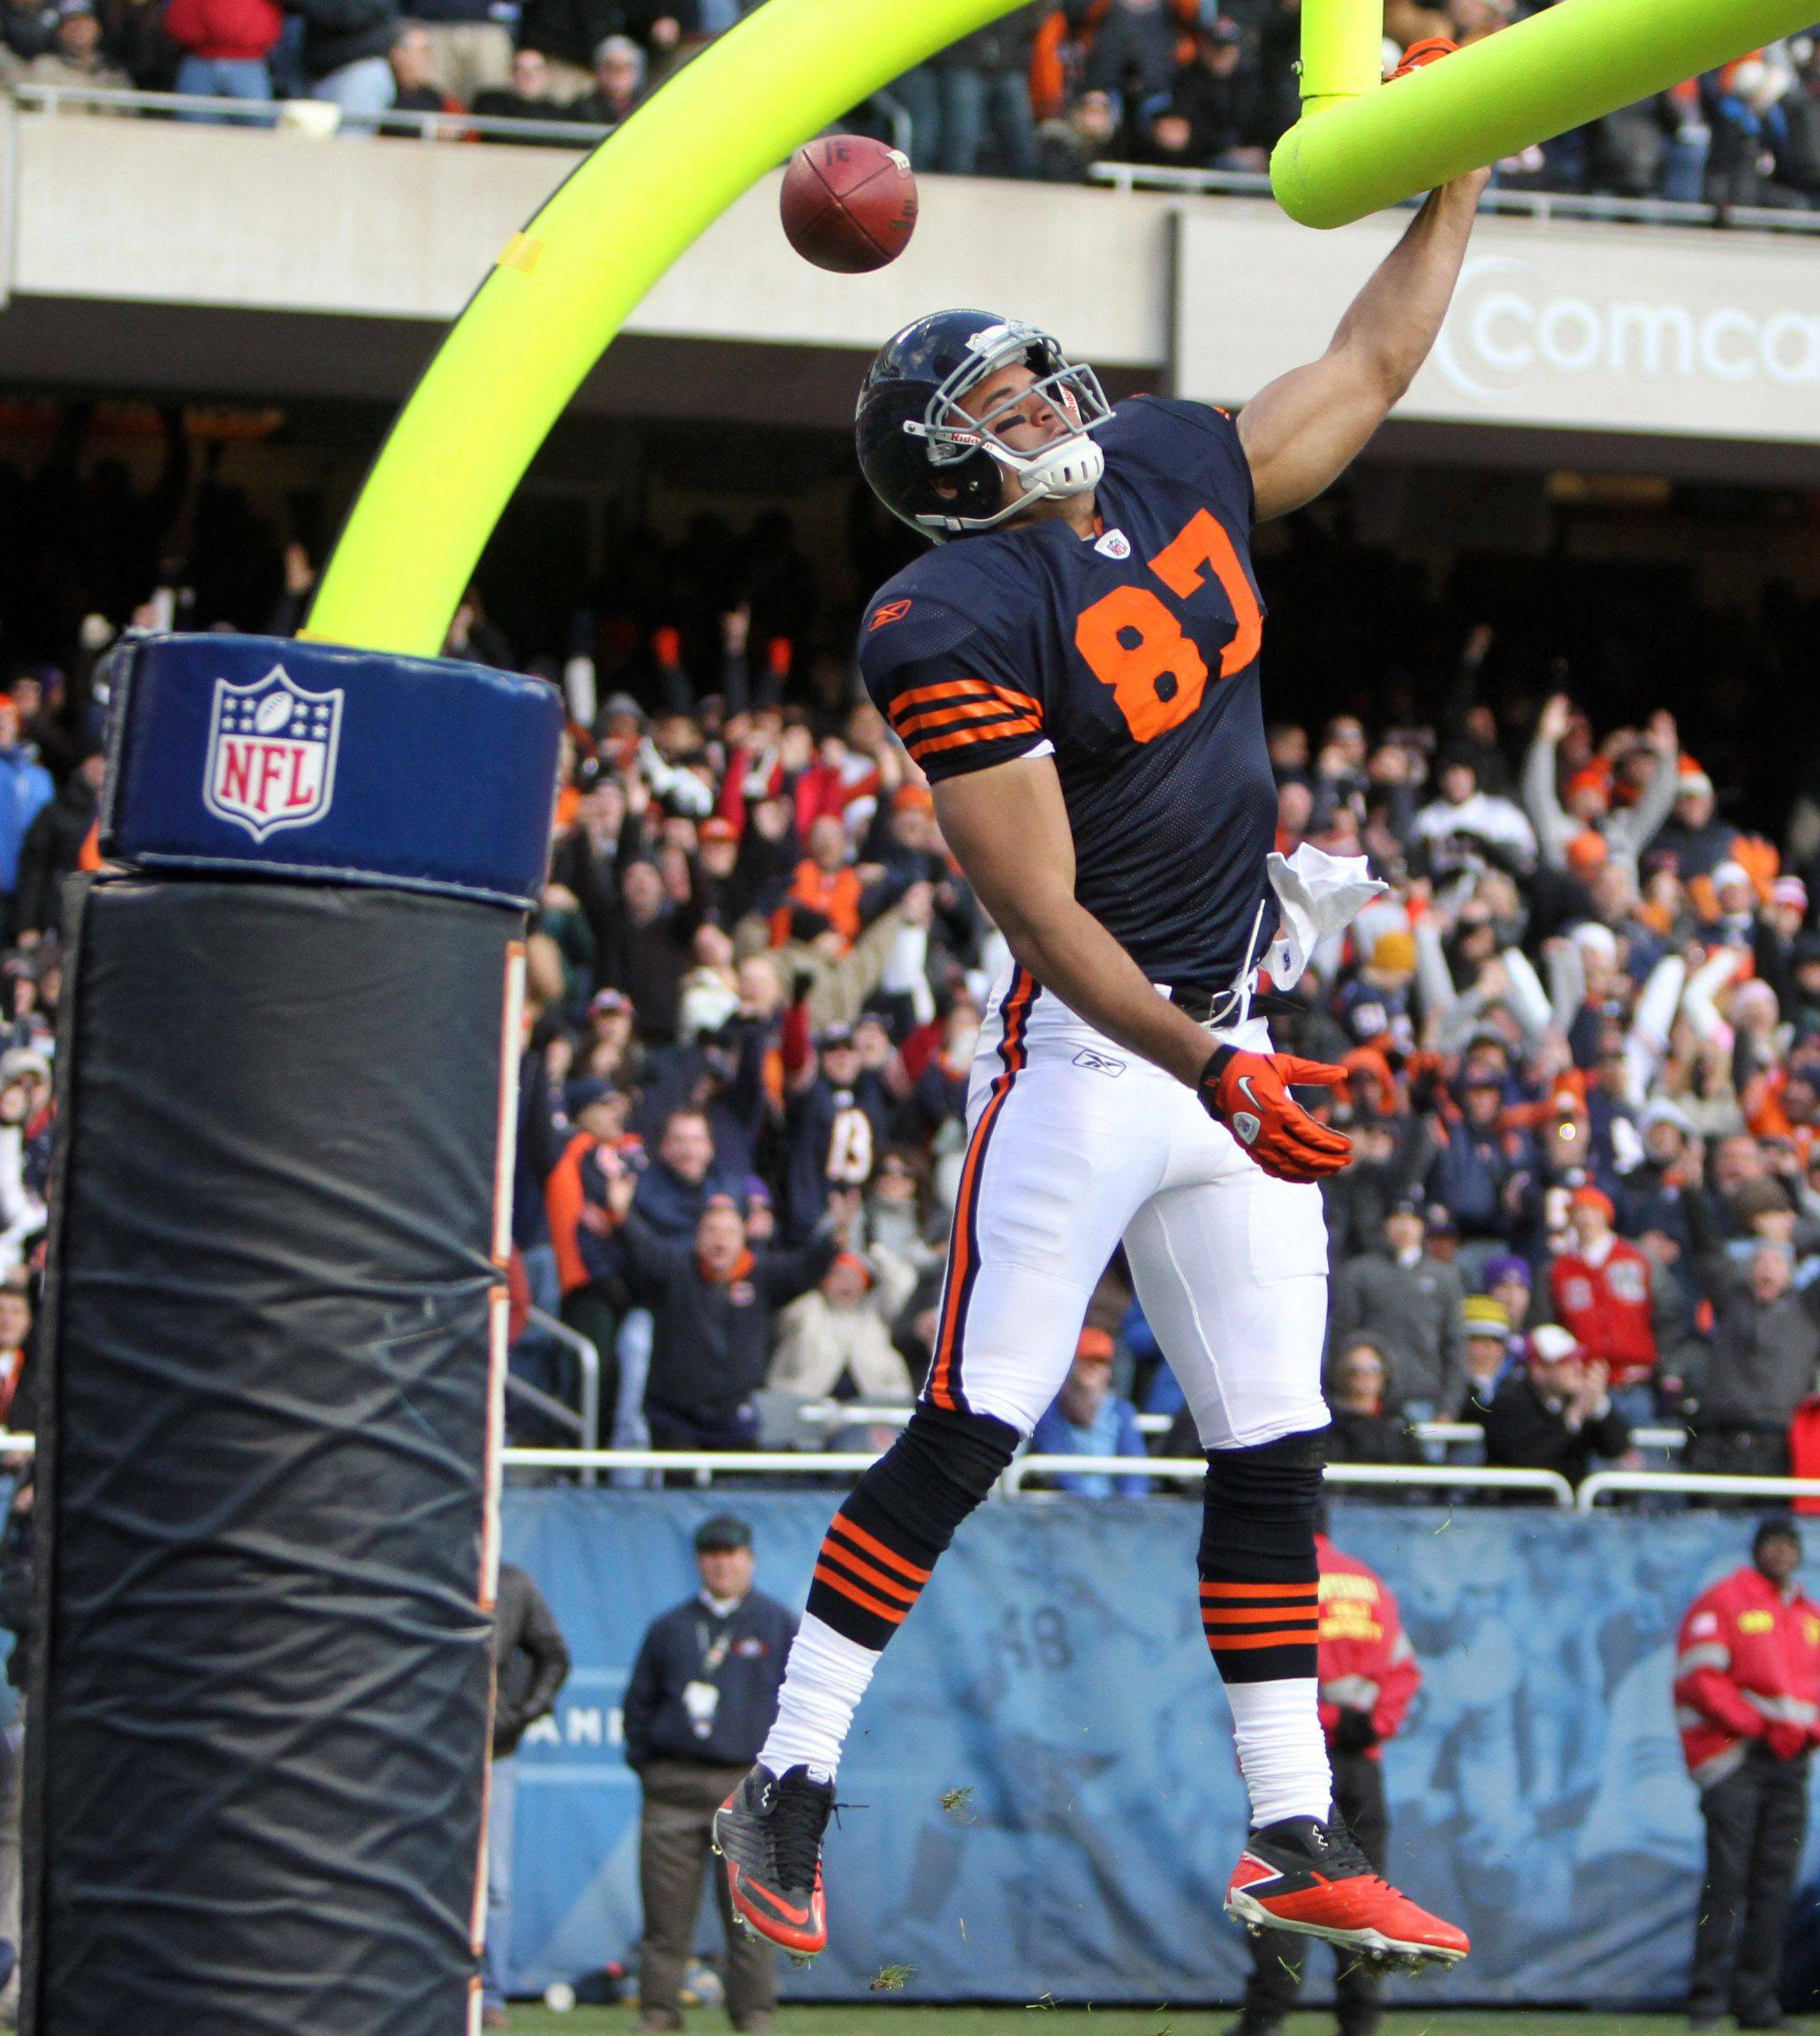 Chicago Bears' Kellen Davis dunks the ball over the goal post after scoring a touchdown against Minnesota Vikings in the second half.